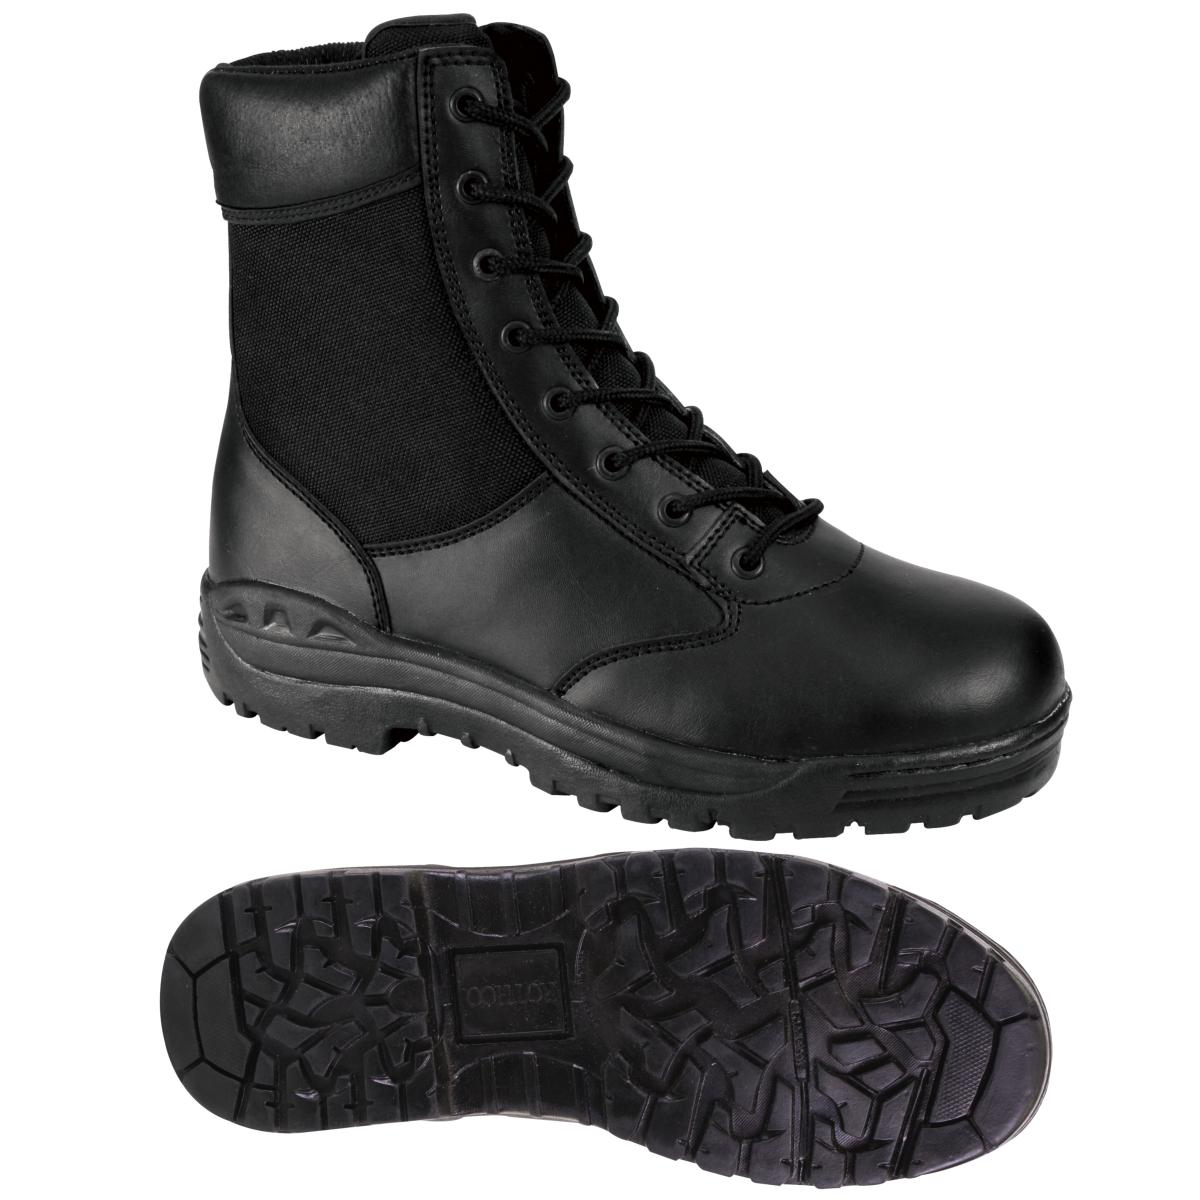 Rothco Boot  Black 8-inch Tactical Boot Rothco for Police/SWAT EMS/EMT f90743